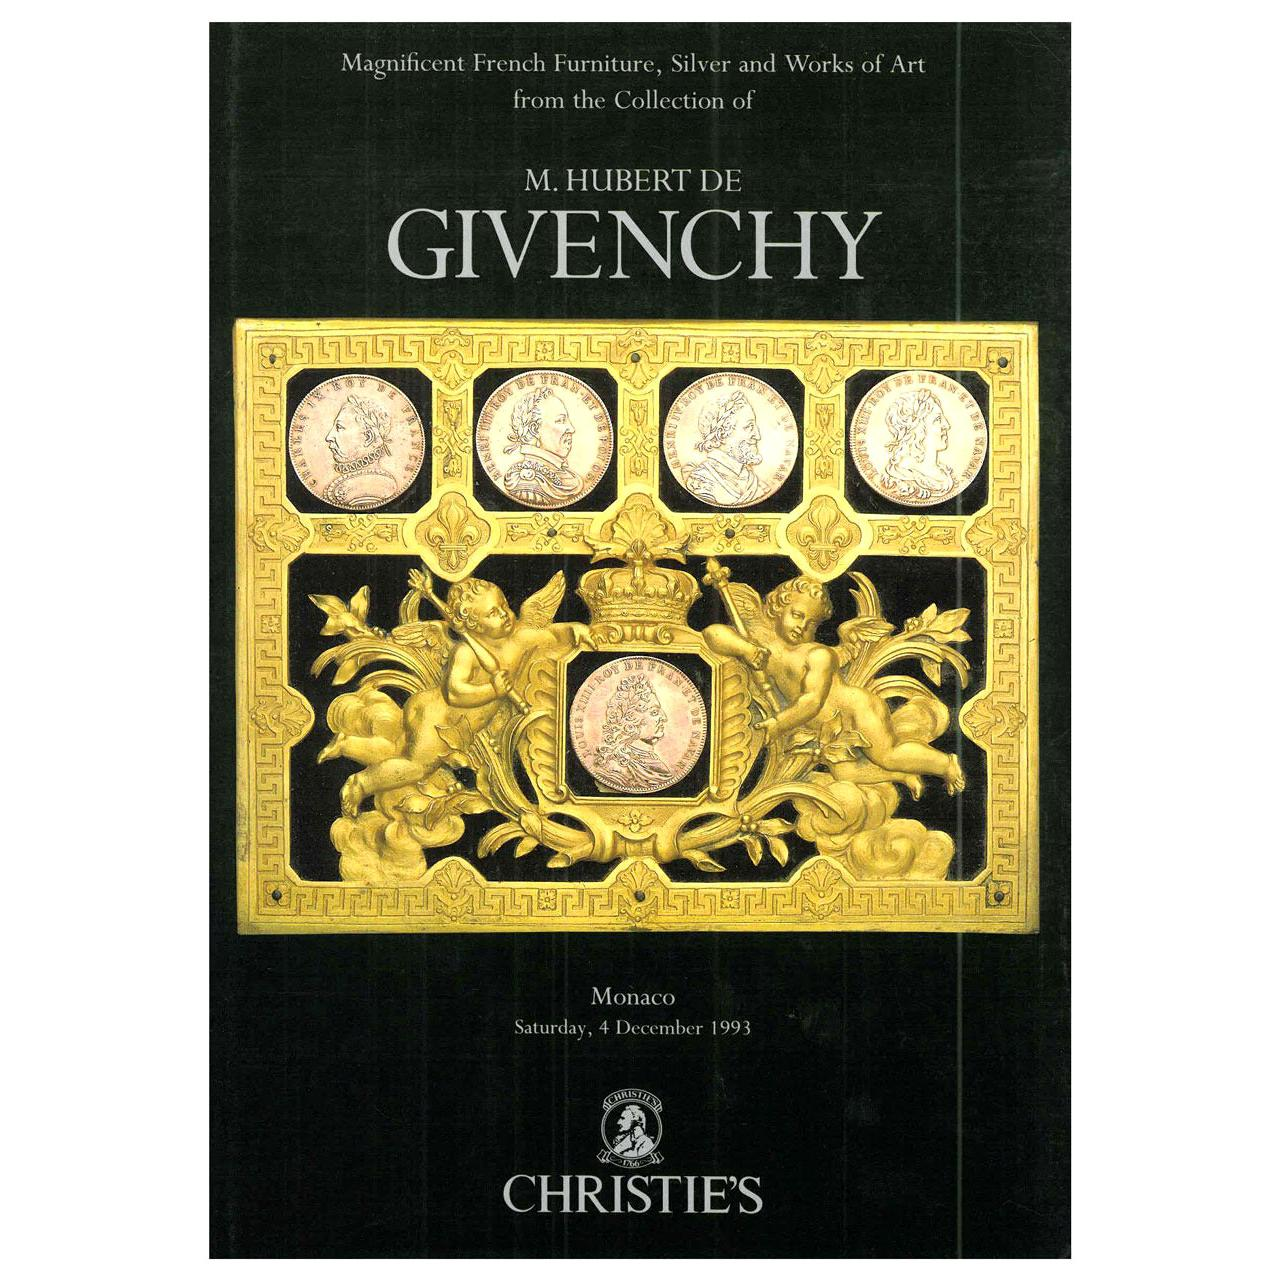 Furniture, Silver and Works of Art from the Collection of Hubert de Givenchy